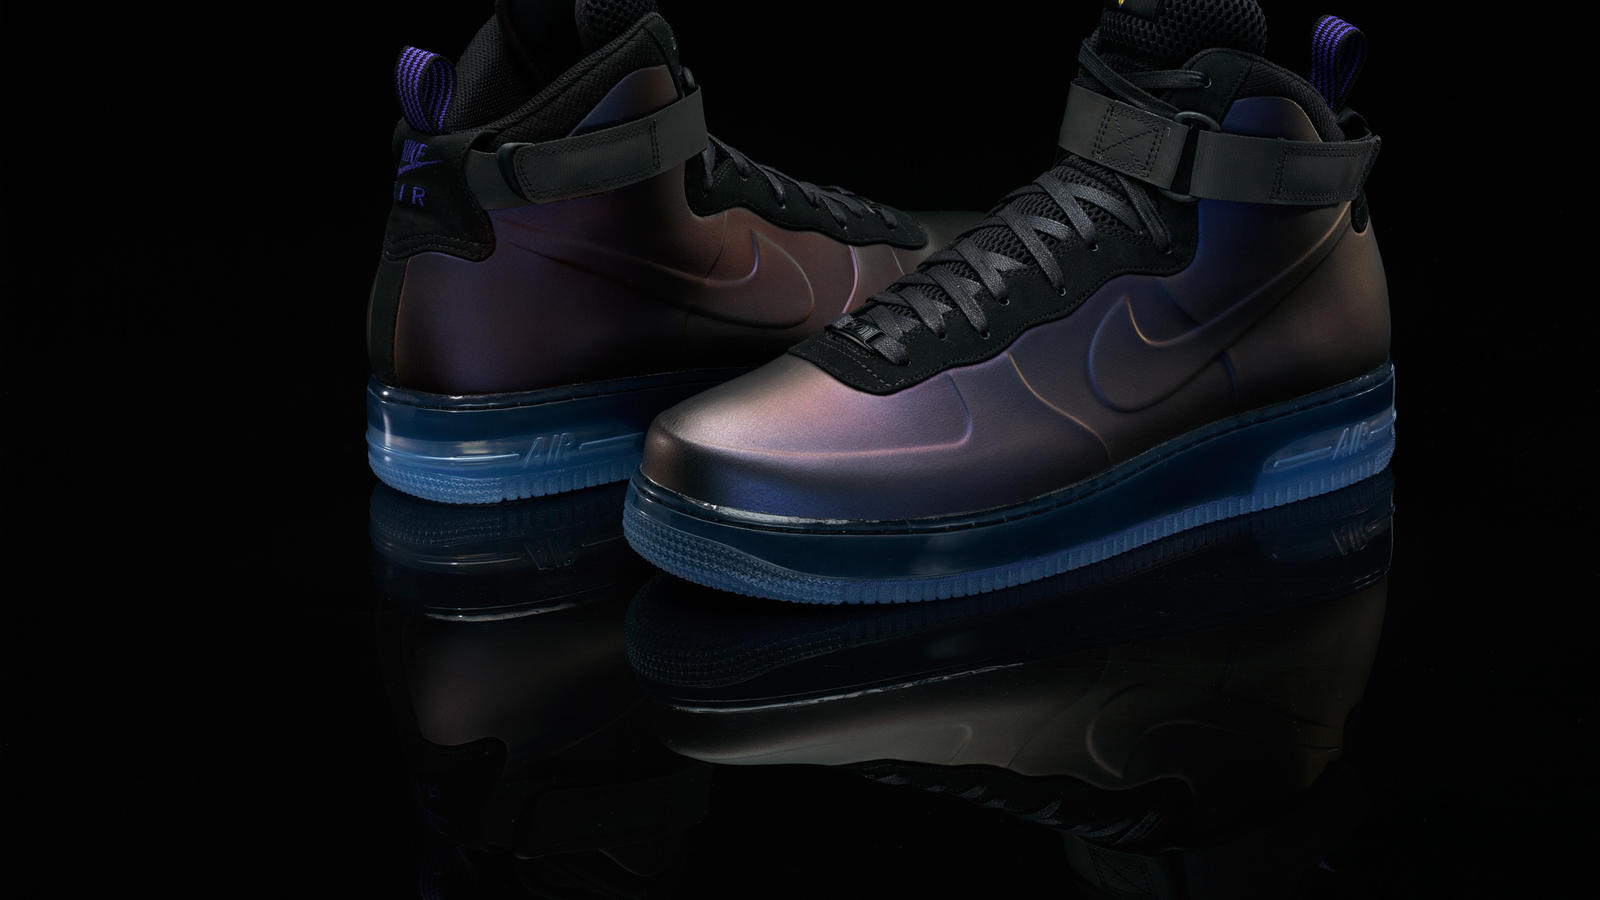 c1d3da6148e8c Air Force 1 2011 All-Star Pack - Nike News